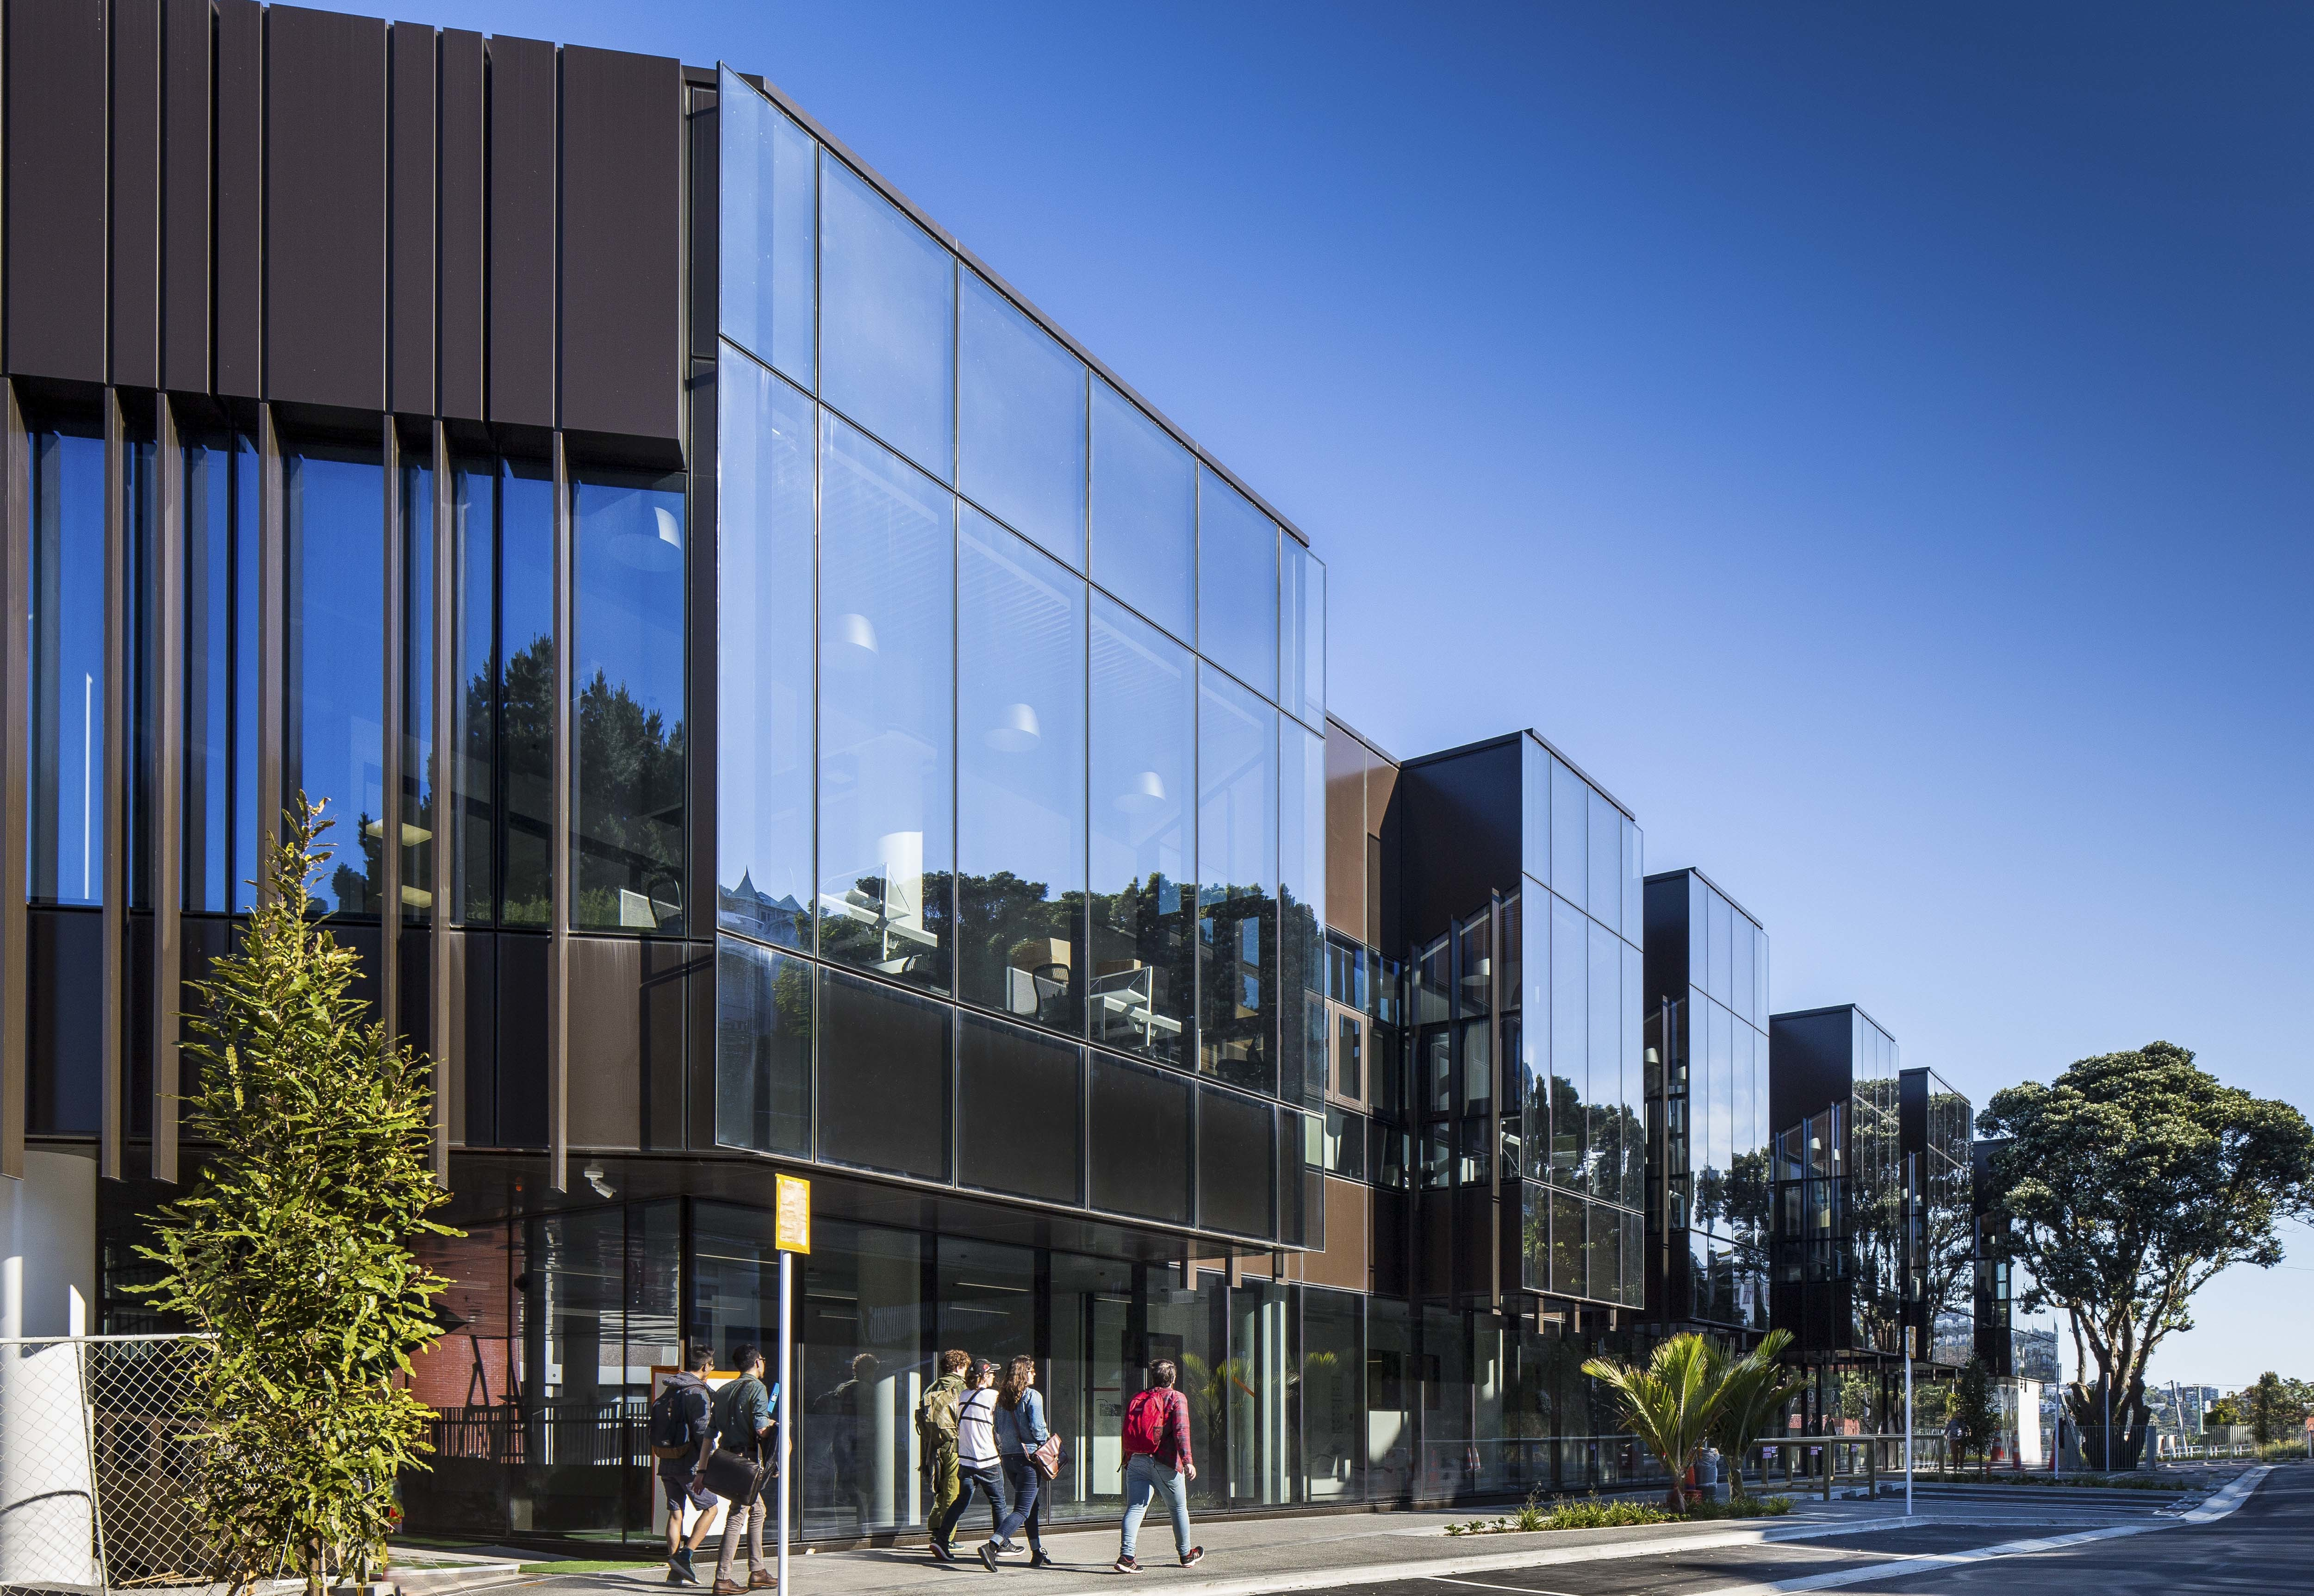 Facilitating future science at Victoria University's state-of-the-art new building